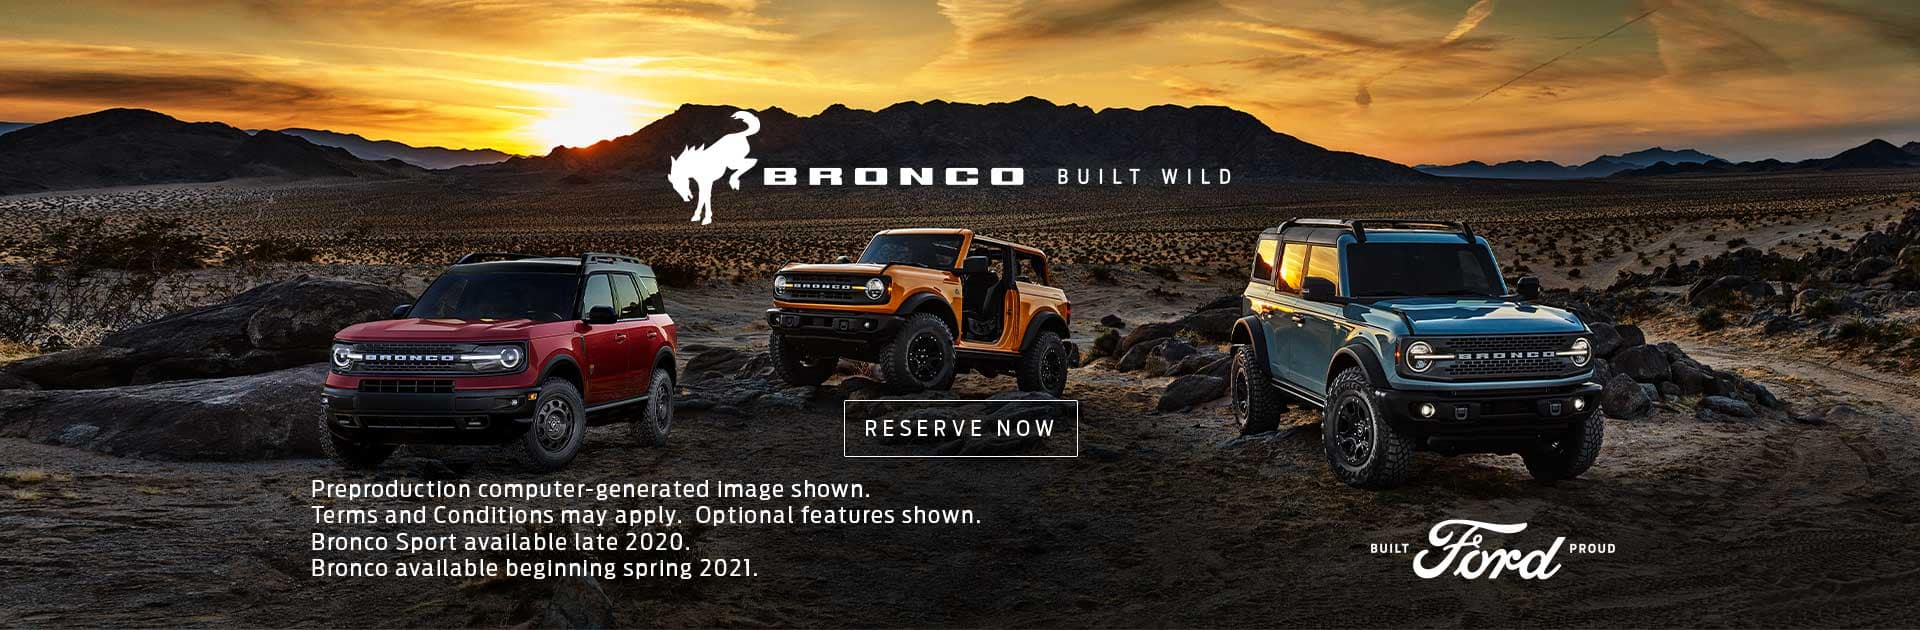 Reserve your Bronco now